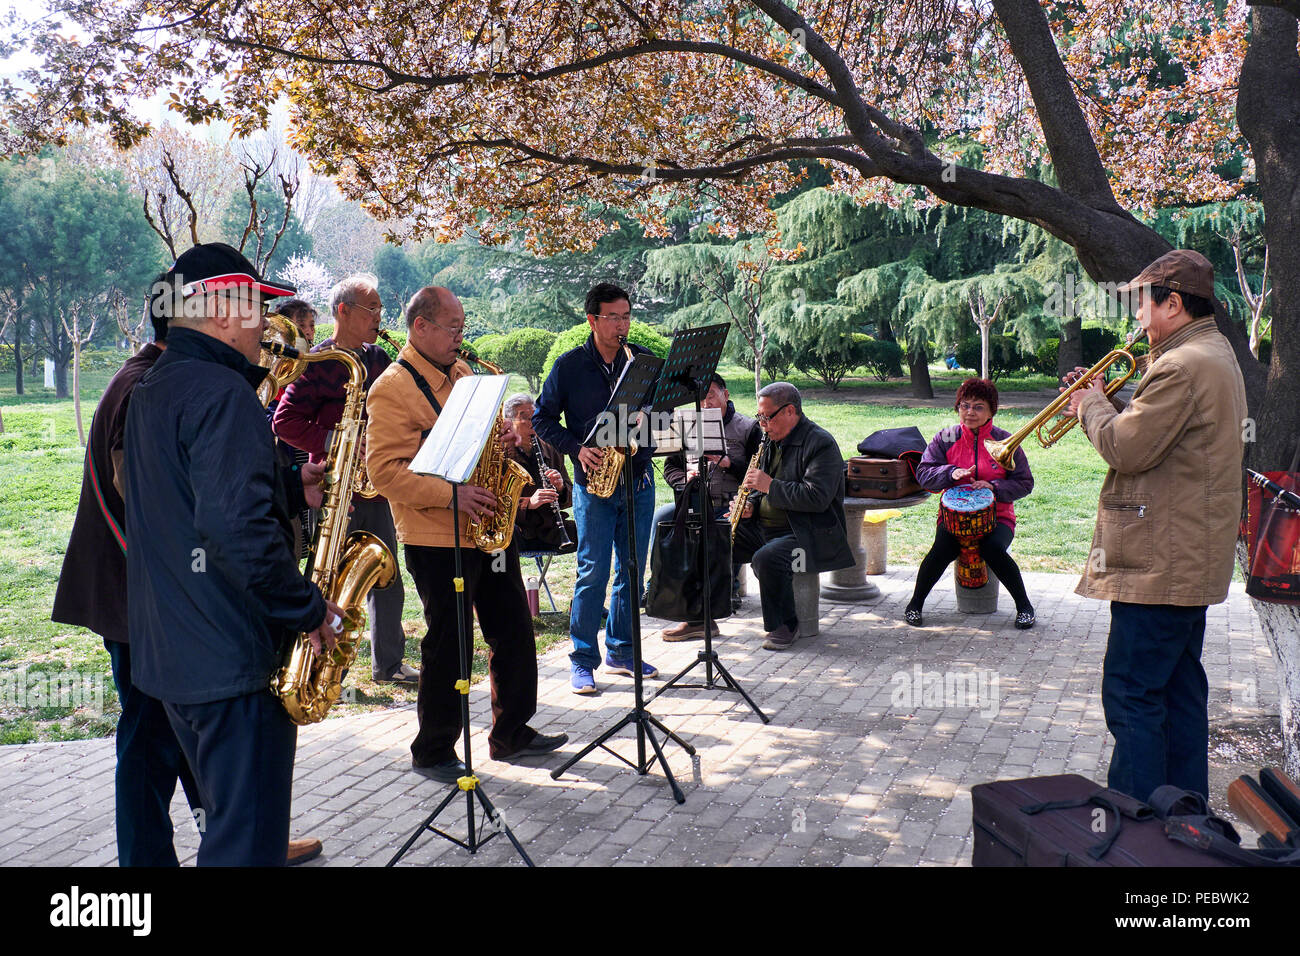 Band of Amateur Musicians Playing in a Park, Xi'an Shaanxi, China - Stock Image